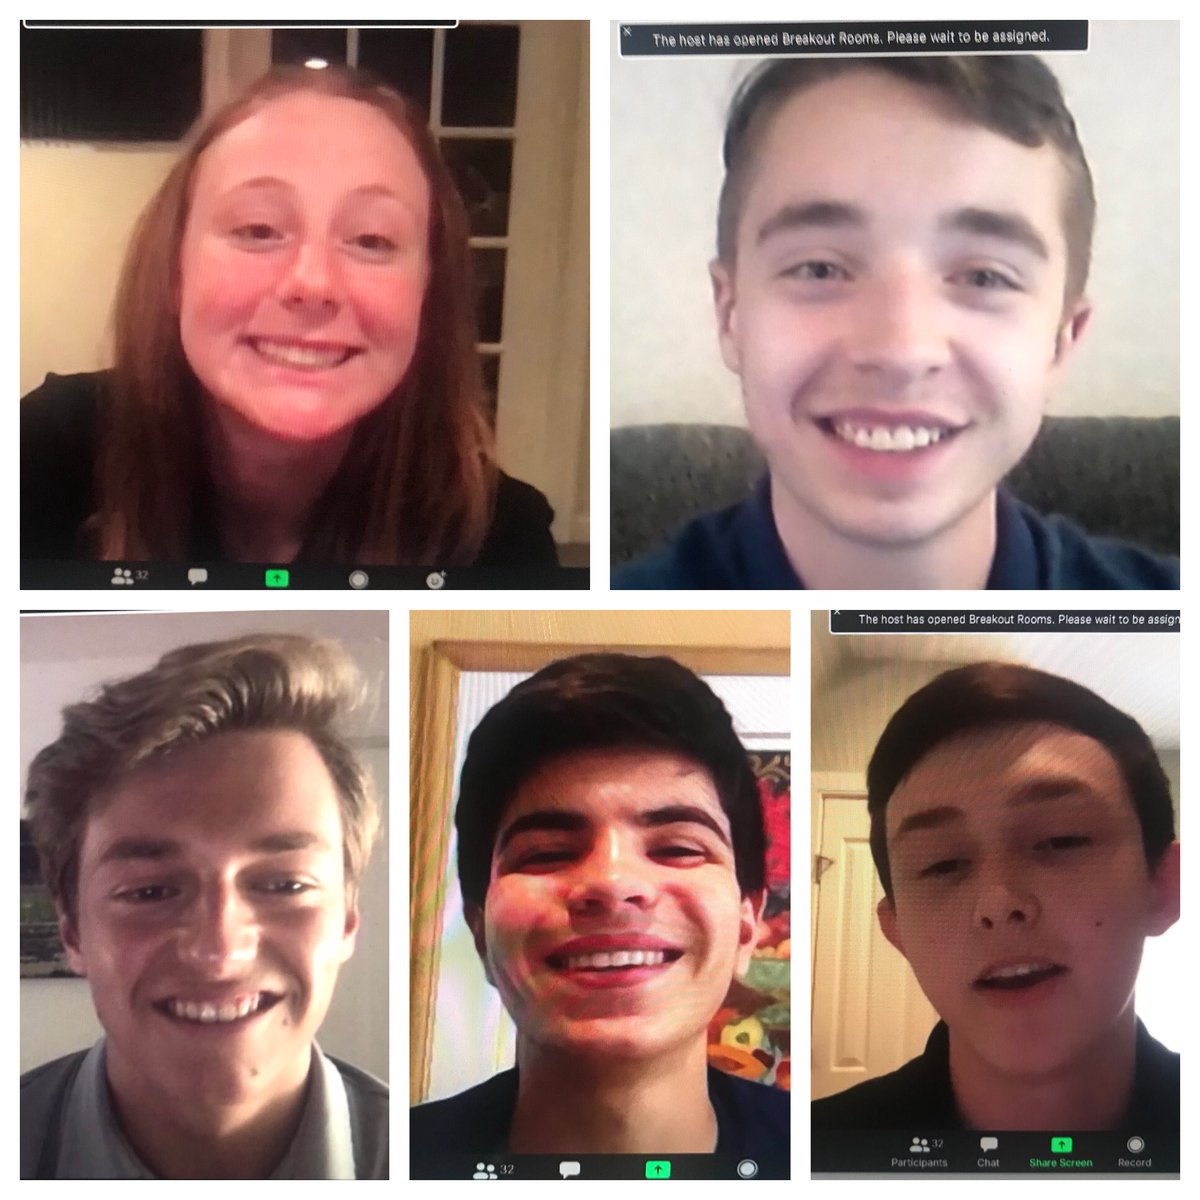 Faces of our Veteran Camp! Zoom is far from perfect but it's working well! And you can see these kids are building incredible portfolios and having a blast! @zoealter1 @EddieKalegi @CameronManna @aiden_blanc10 Michael Micceri #Veterans https://t.co/YtXx0aA9g6